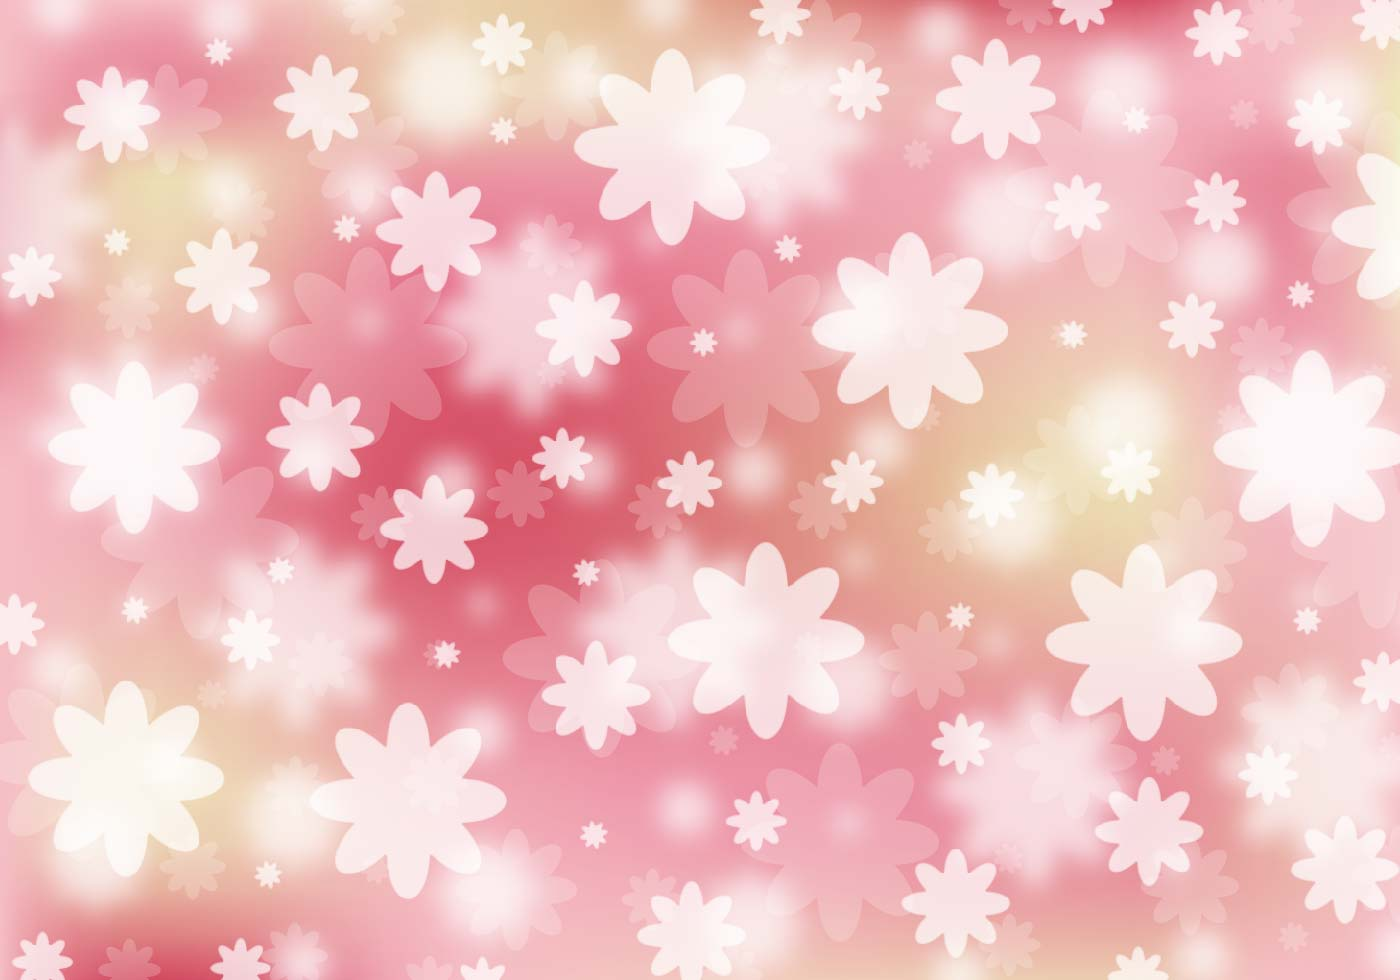 Free vector abstract floral background download free vector art stock graphics images - Floral background ...